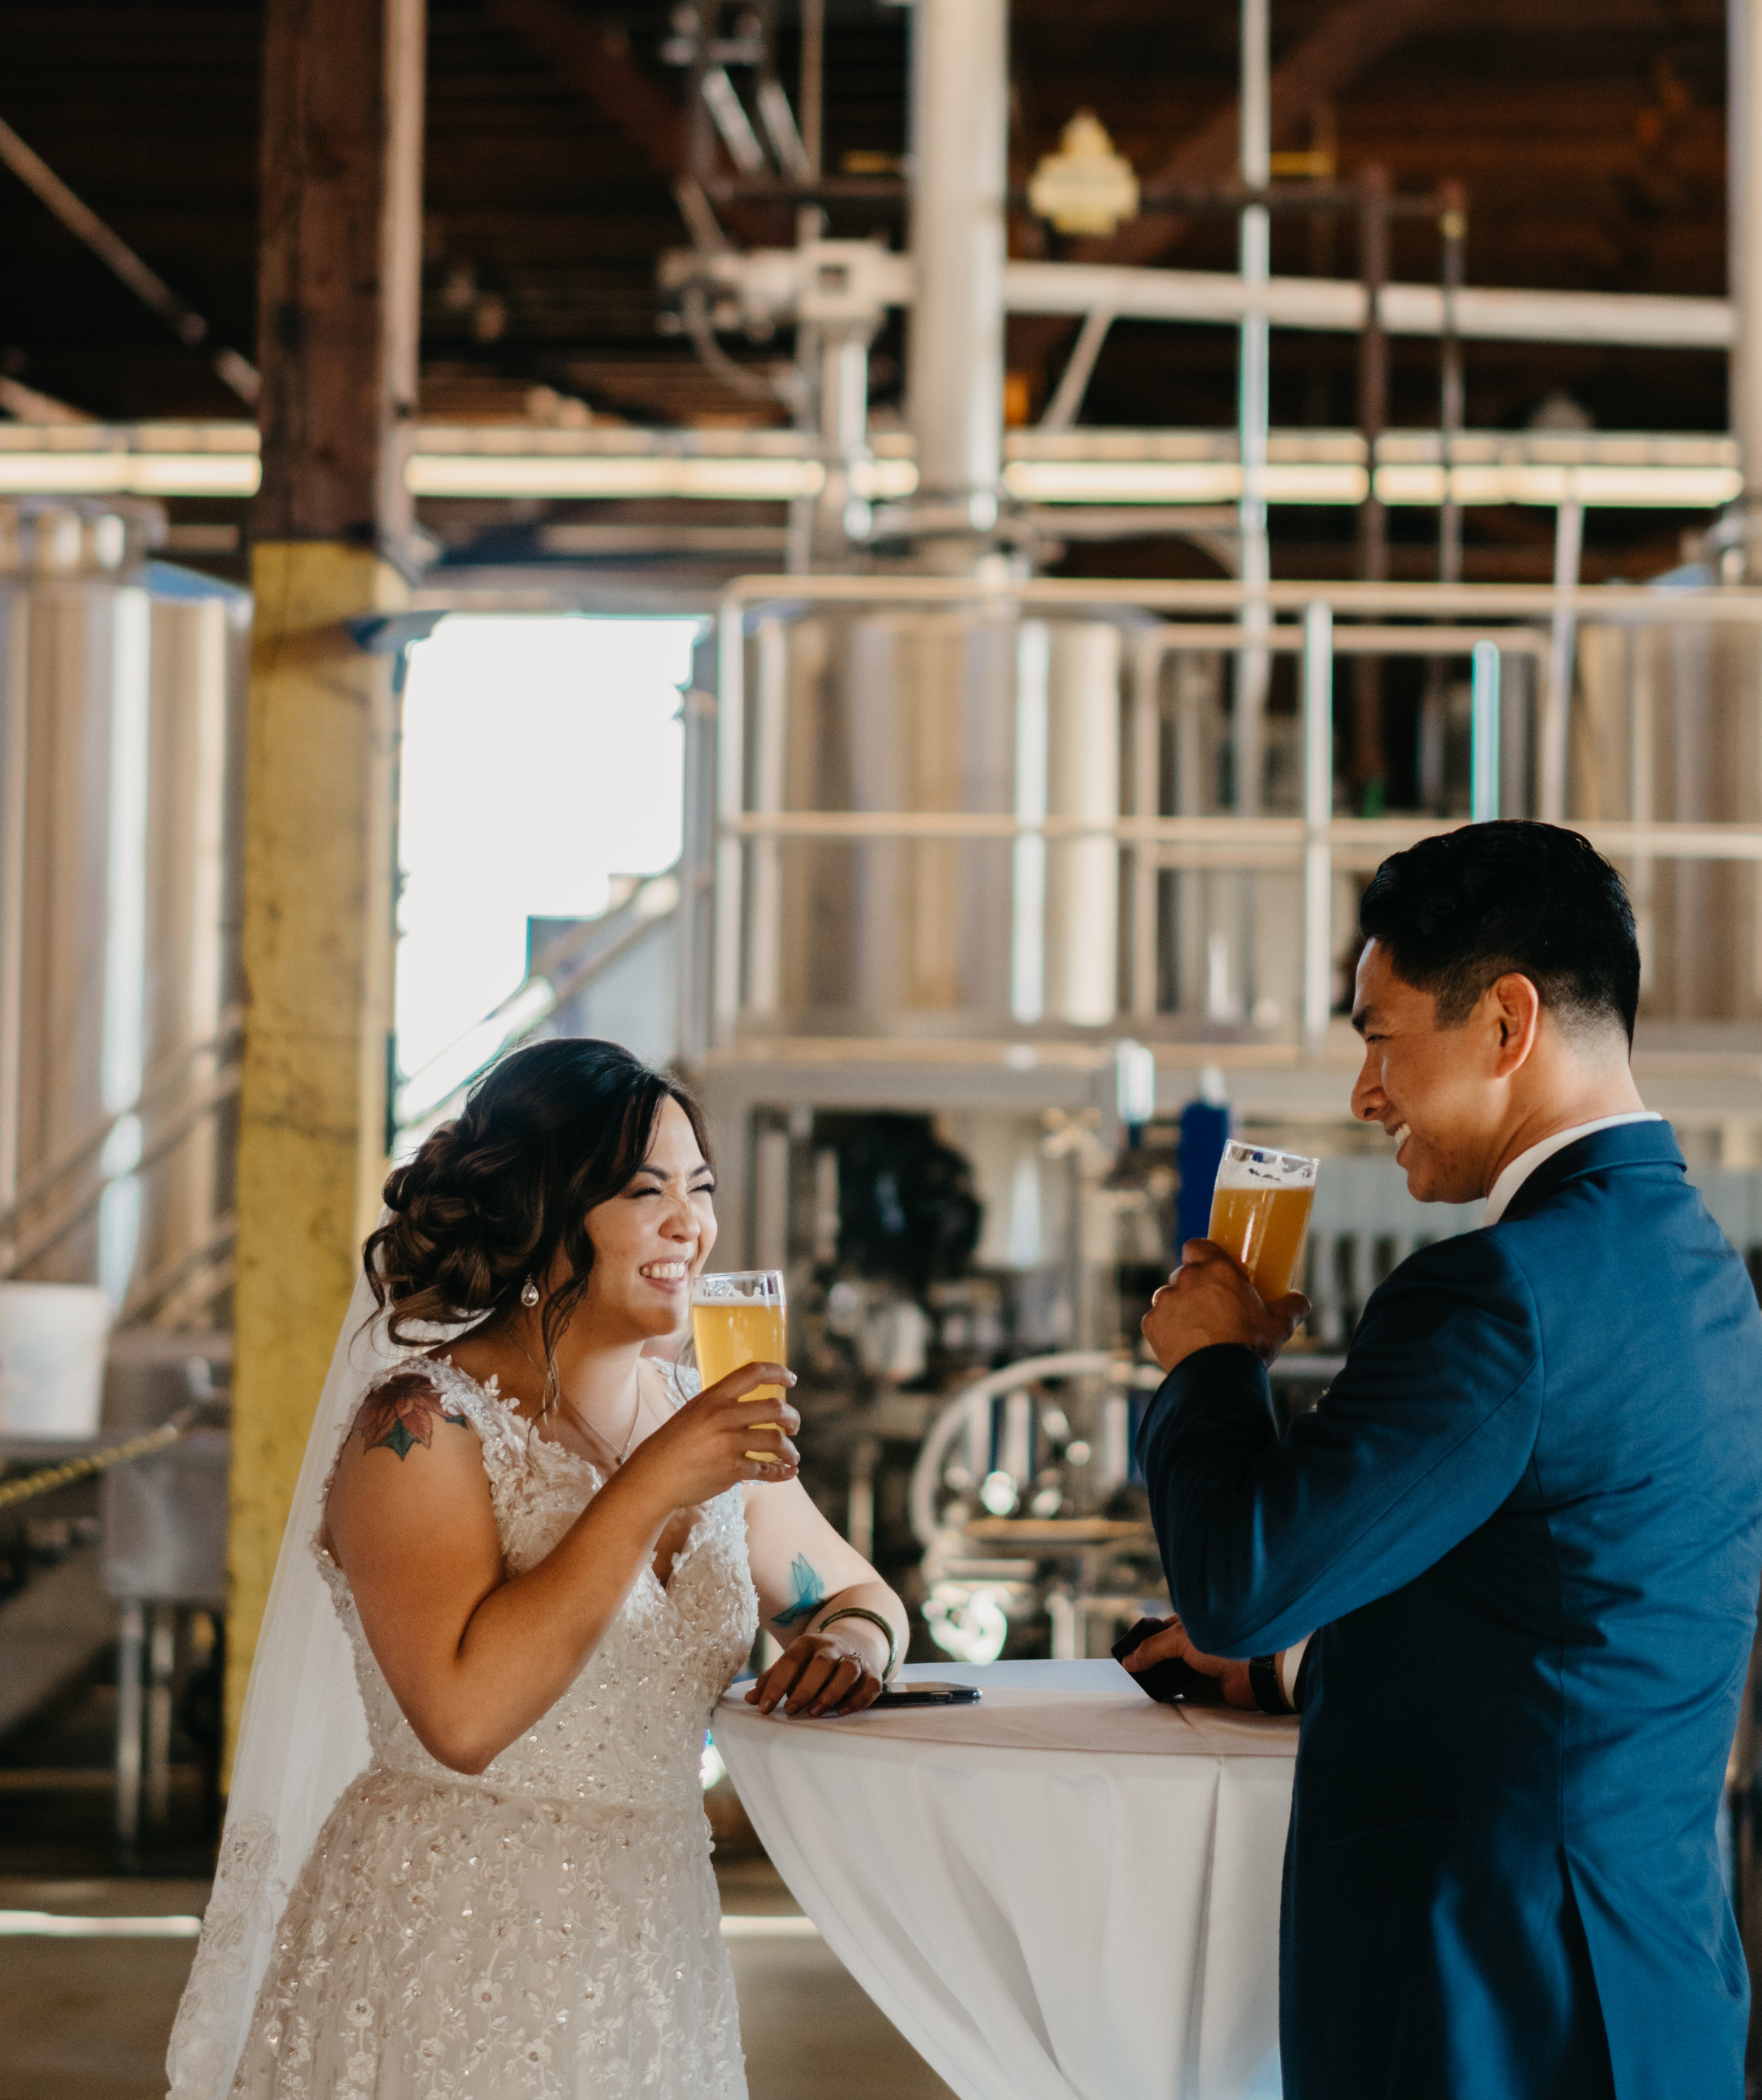 Southern California (SoCal) - Los Angeles Modern Brewery Wedding